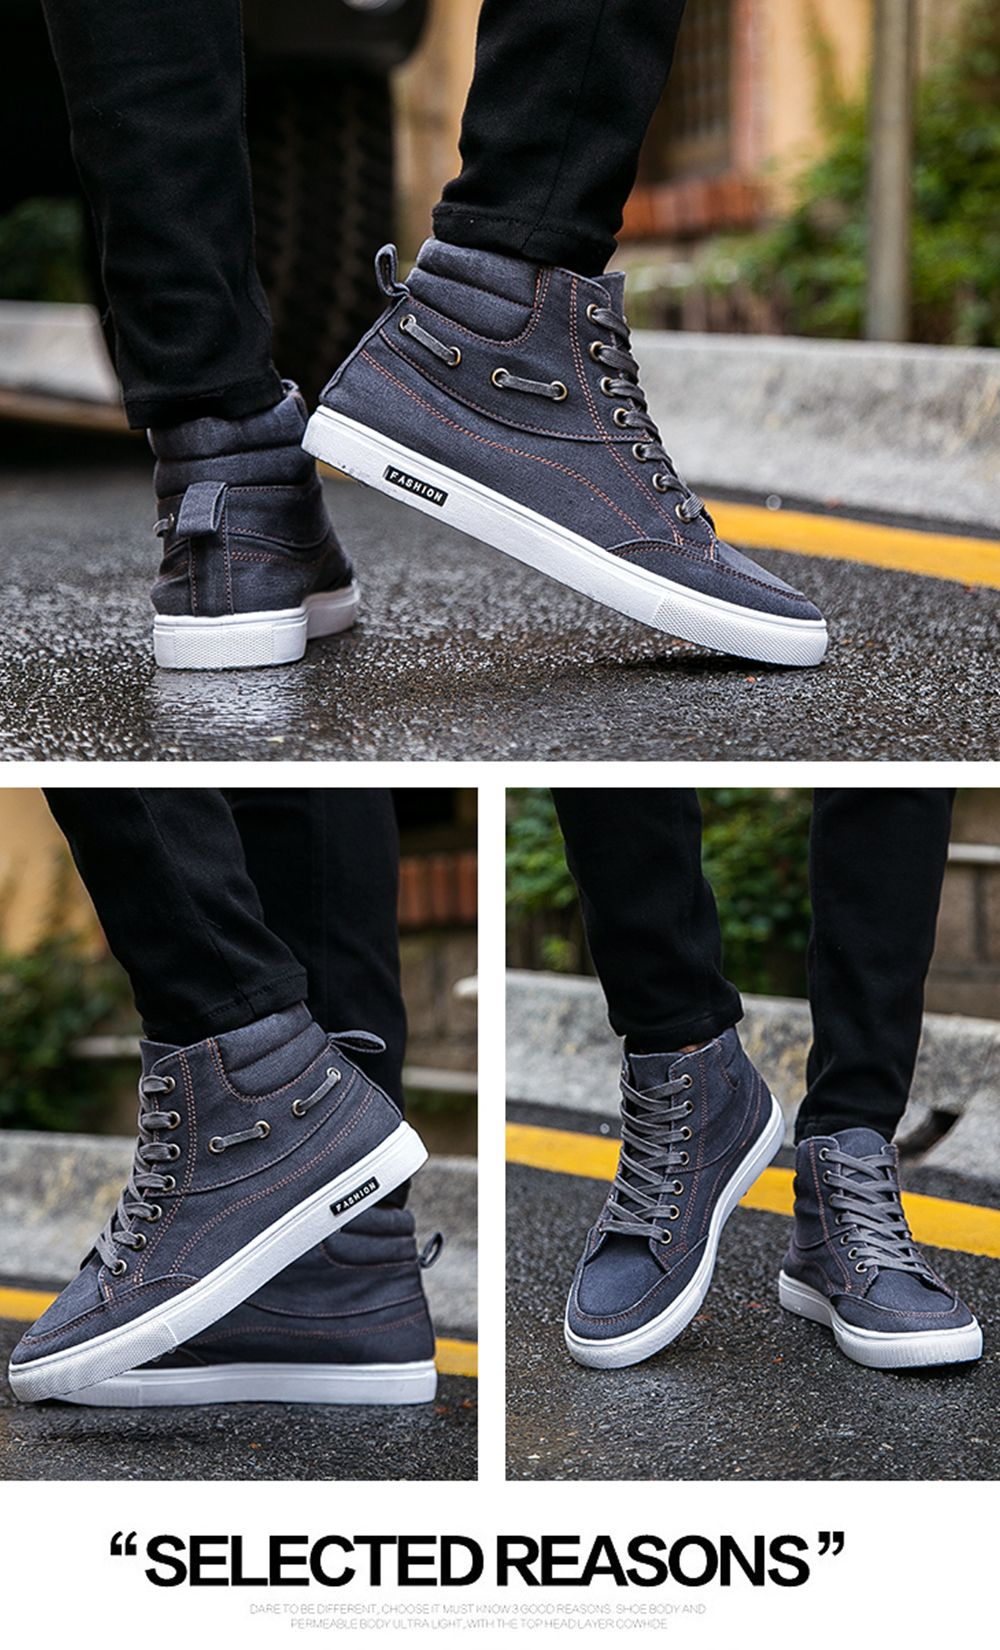 Men's Casual Canvas High Tops Lace Up Fashion Sneakers